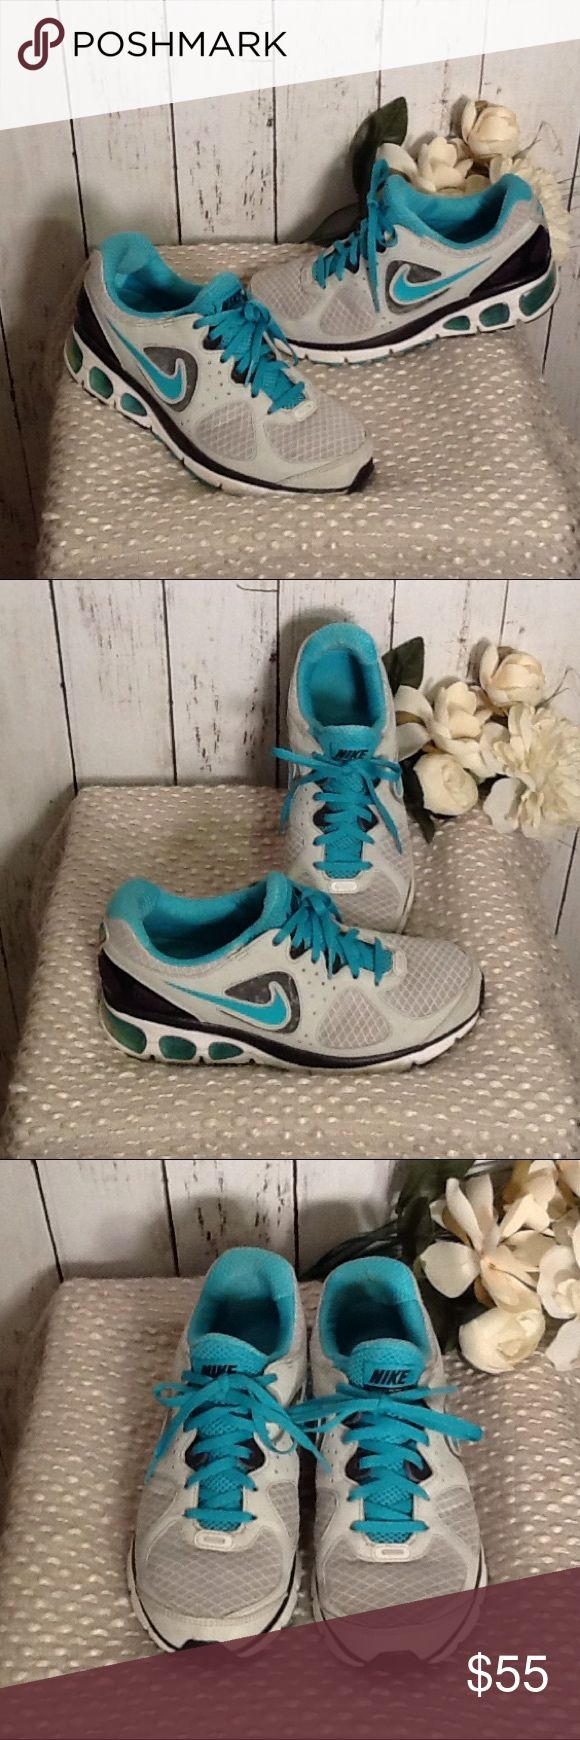 Nike Air Max Athletic Shoes Size 7 Blue Gray Great pair of Nike Air Max ladies running shoes, beautiful color of teal blue, gray and white, nicer in person, retailed new for approx $150, very gently worn condition, plenty of wear left, soles are in good condition with a little signs of wear, overall in very good condition ! Bundle to save 15% off your purchase of 2 or more items from my closet! Nike Shoes Athletic Shoes